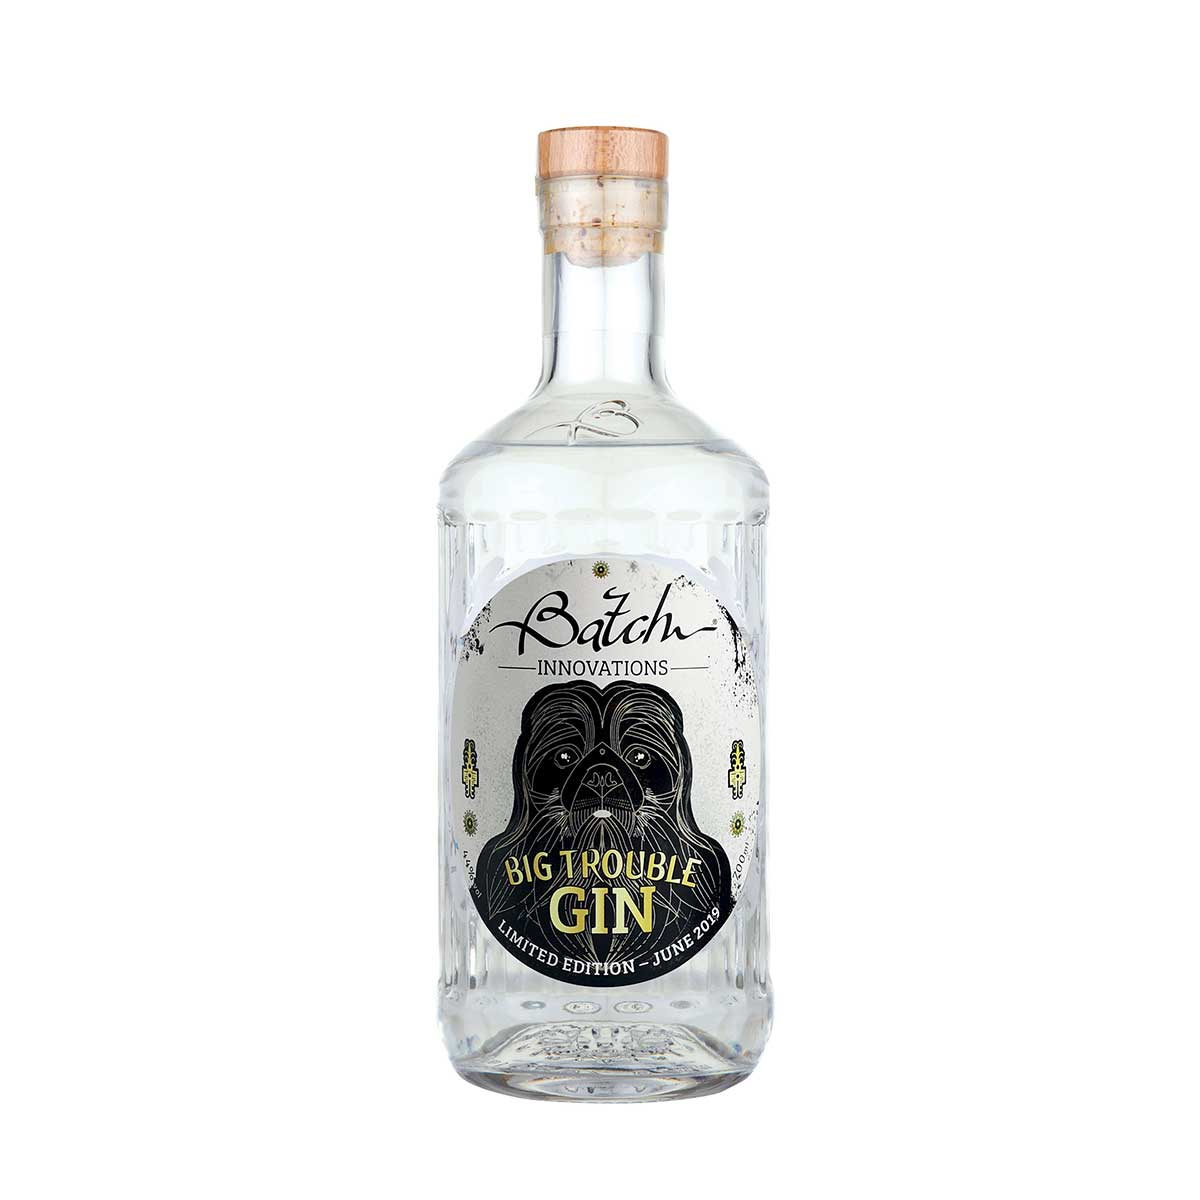 Batch Big Trouble Gin